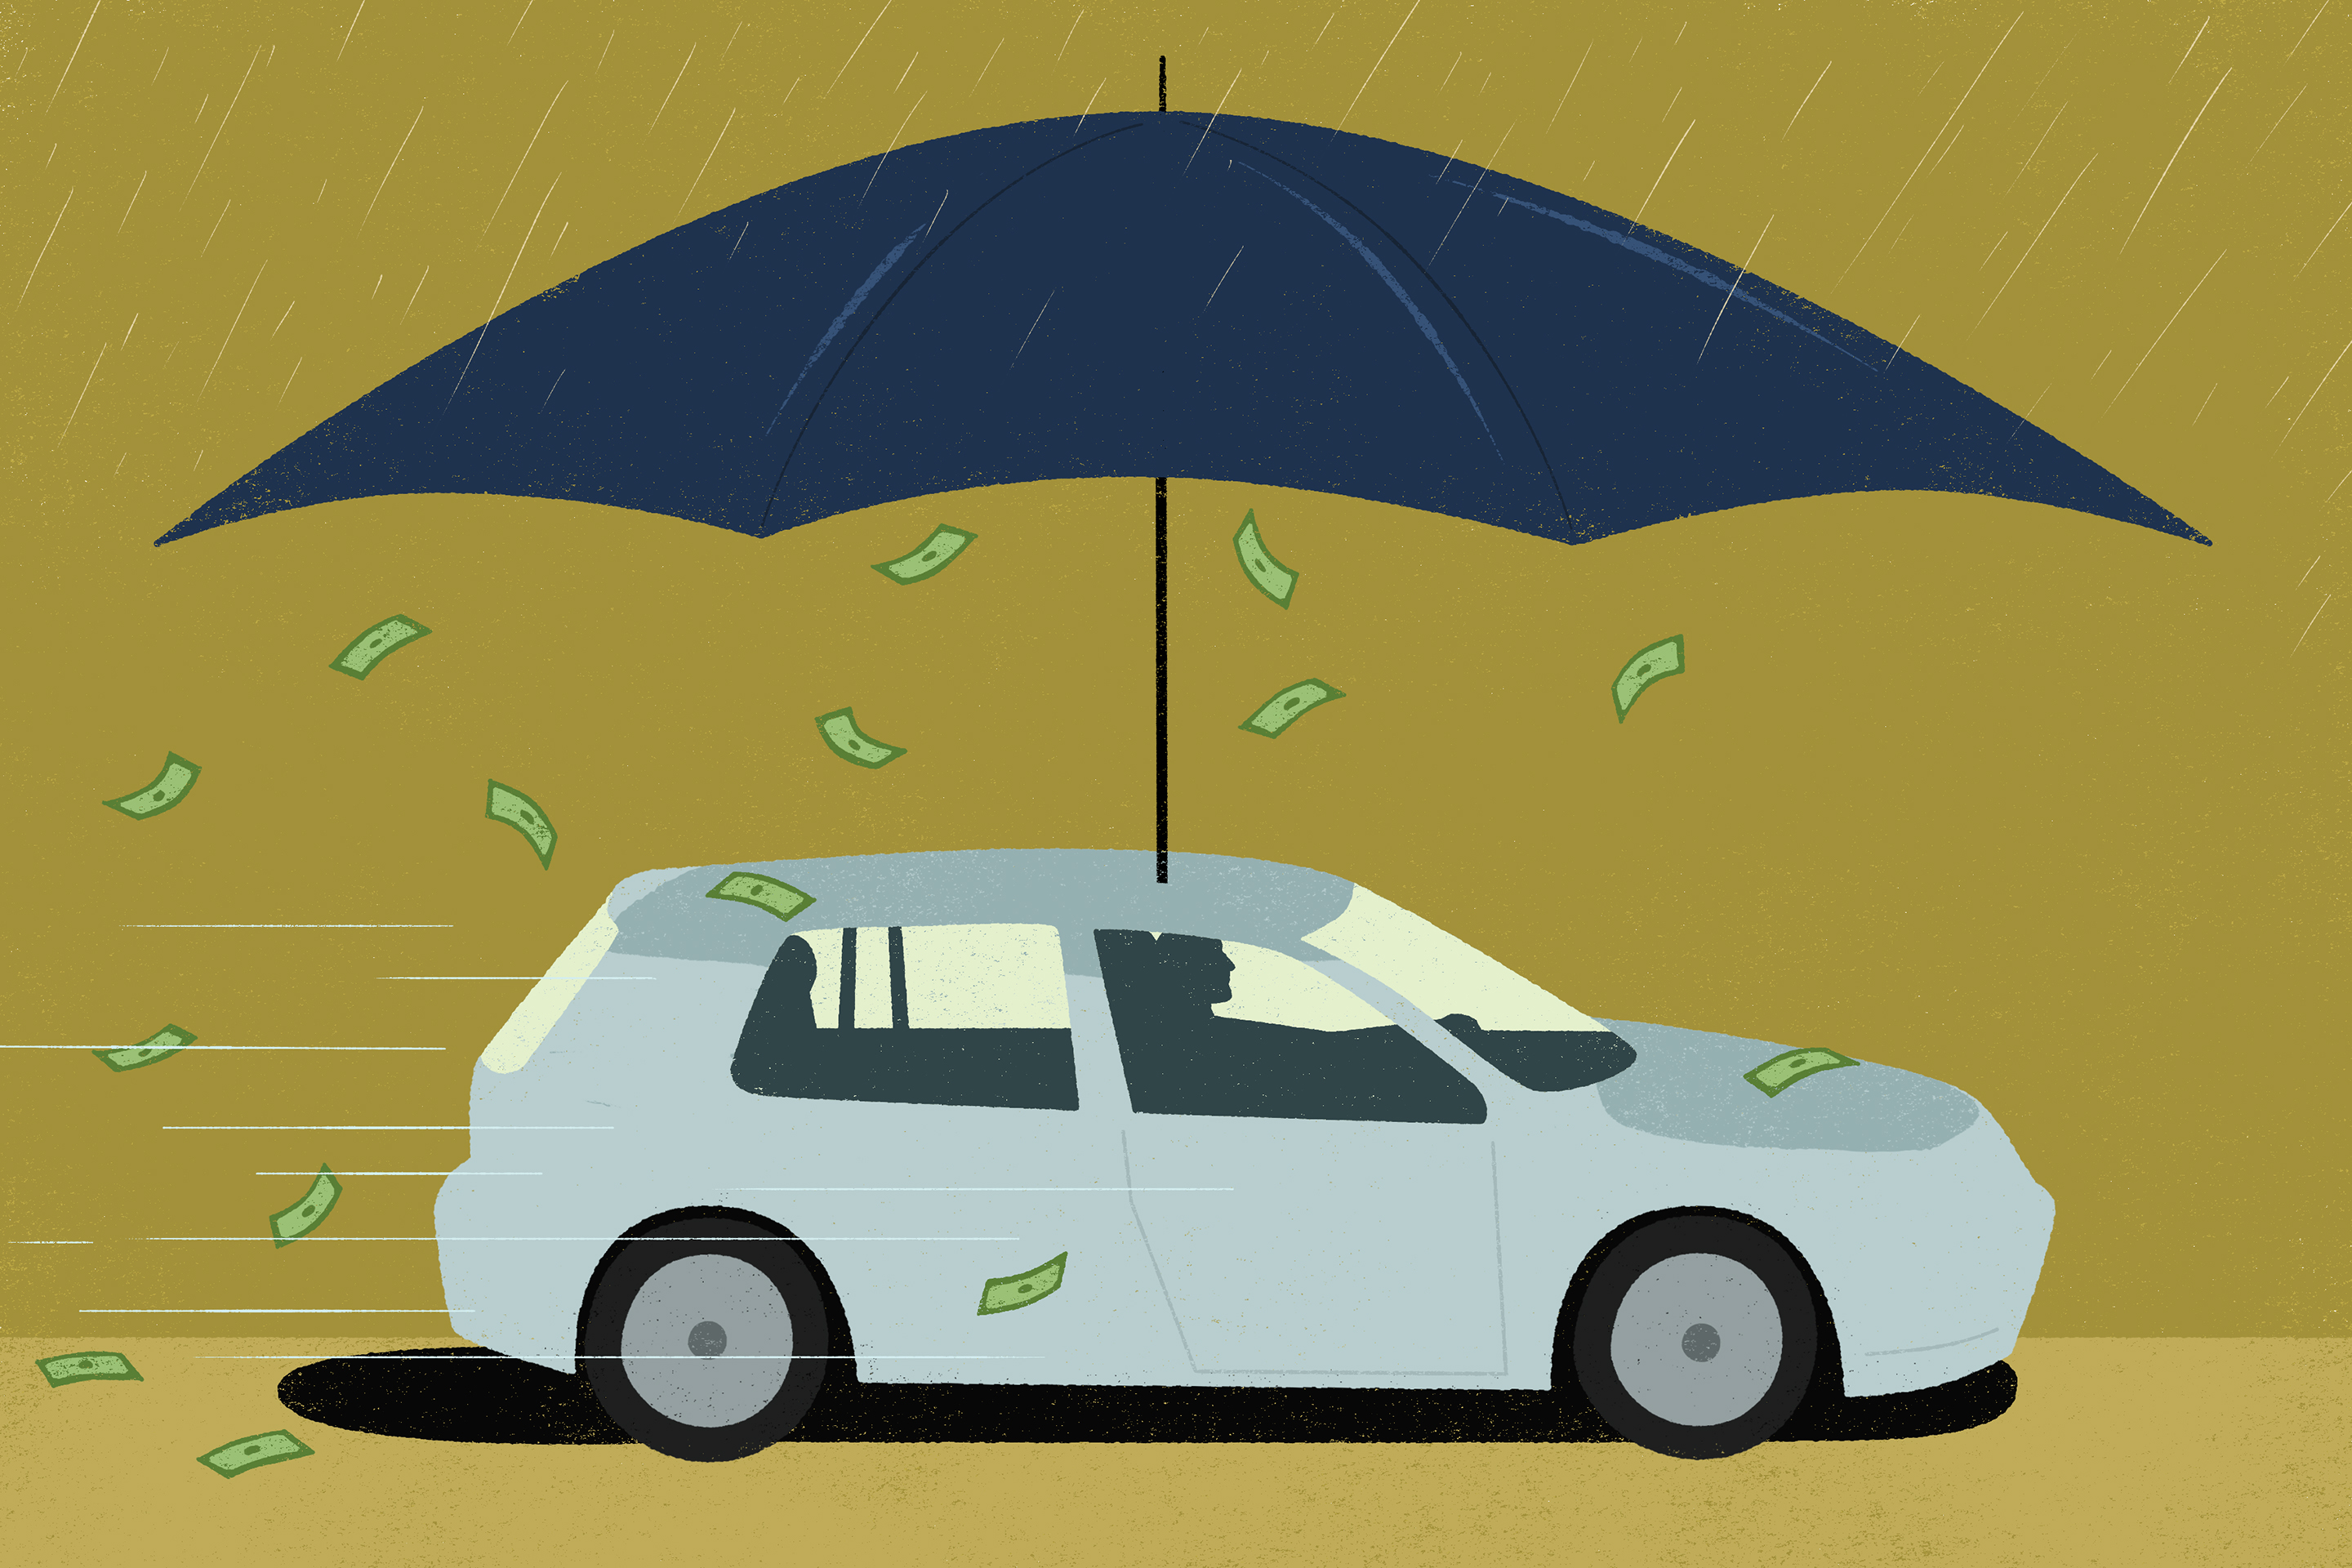 Car with an umbrella on the top, raining in money underneath.